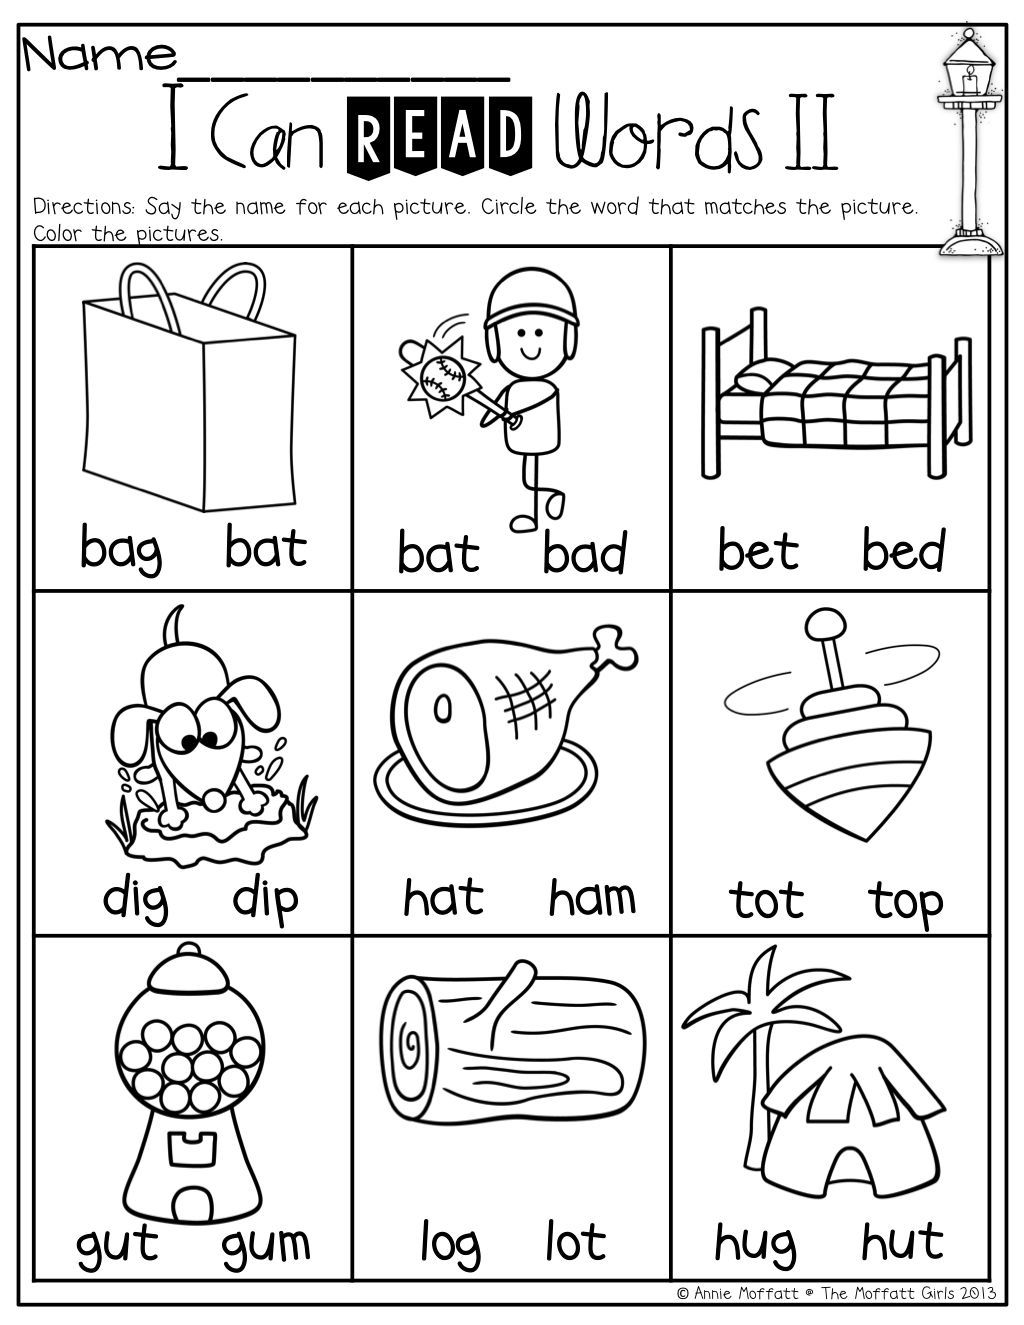 7 letter words with e mrs beattie s classroom word work centers go 22117 | 3e3b35b5691ec812e84c7f5aef62d9c0